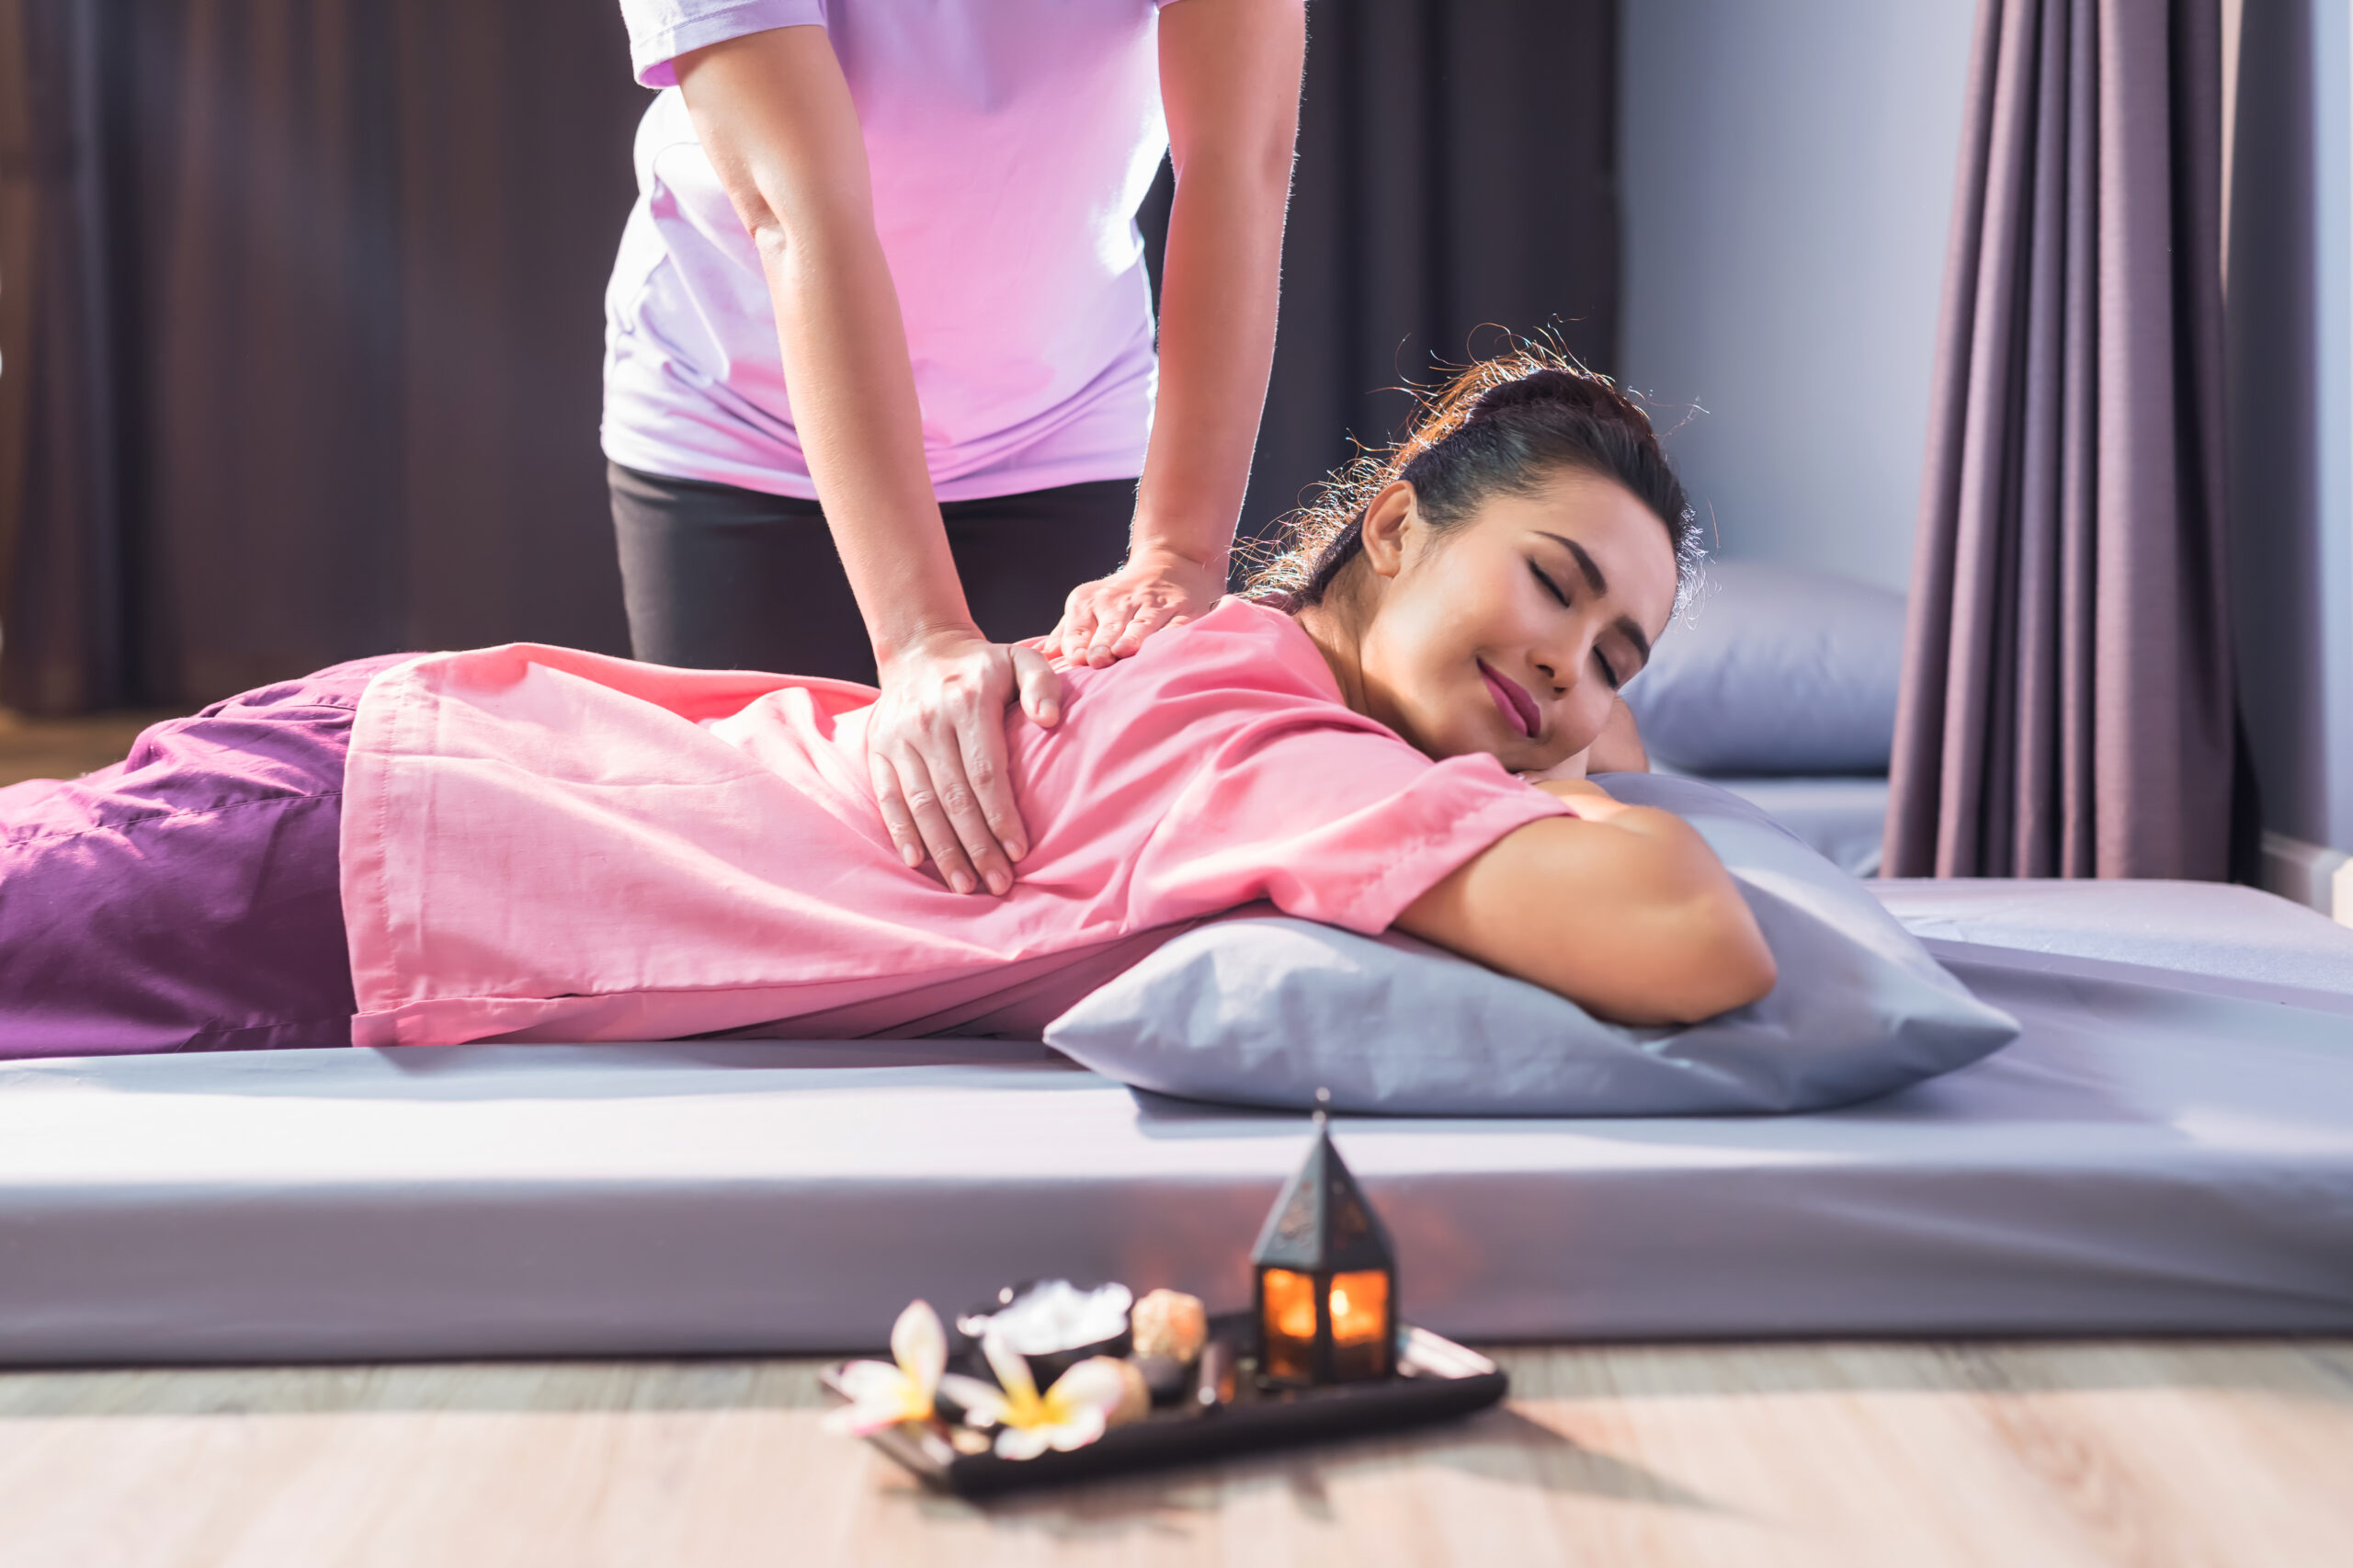 INTERESTING FACTS OF THAI MASSAGE FOR BODY HEALTH